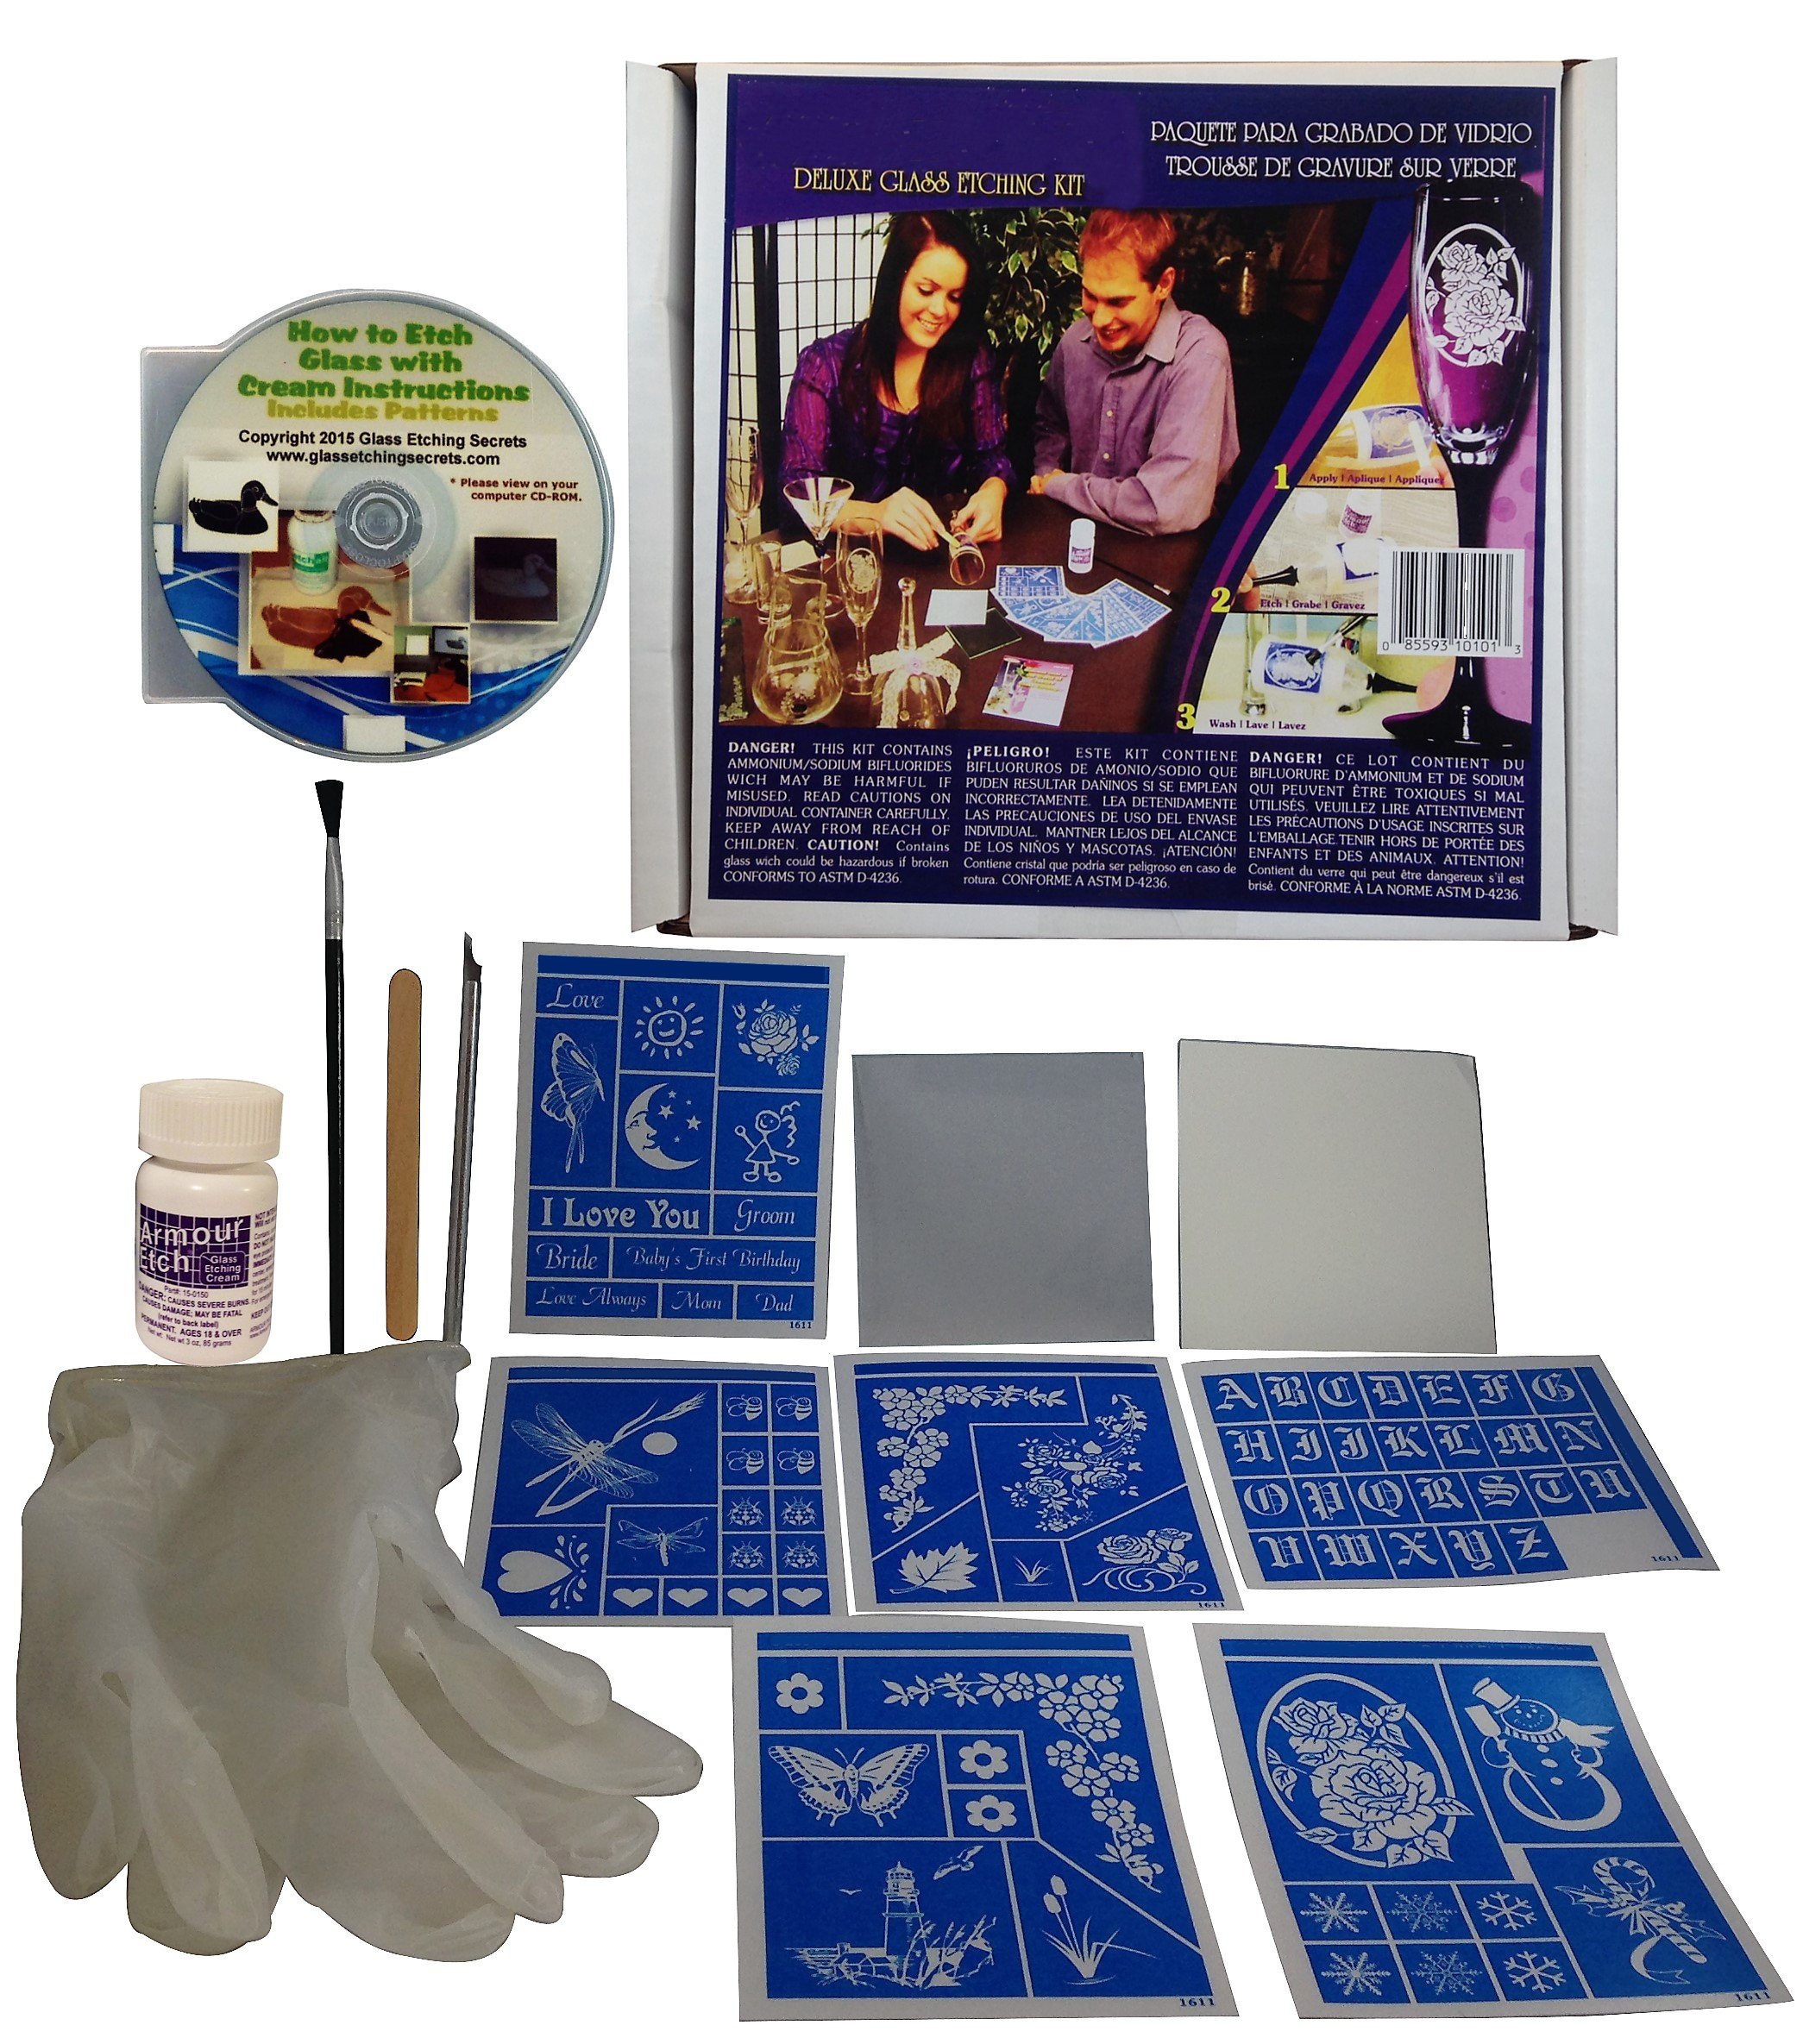 Glass Etching Kit Deluxe with Free How to Etch & Patterns CD by Glass Etching Secrets